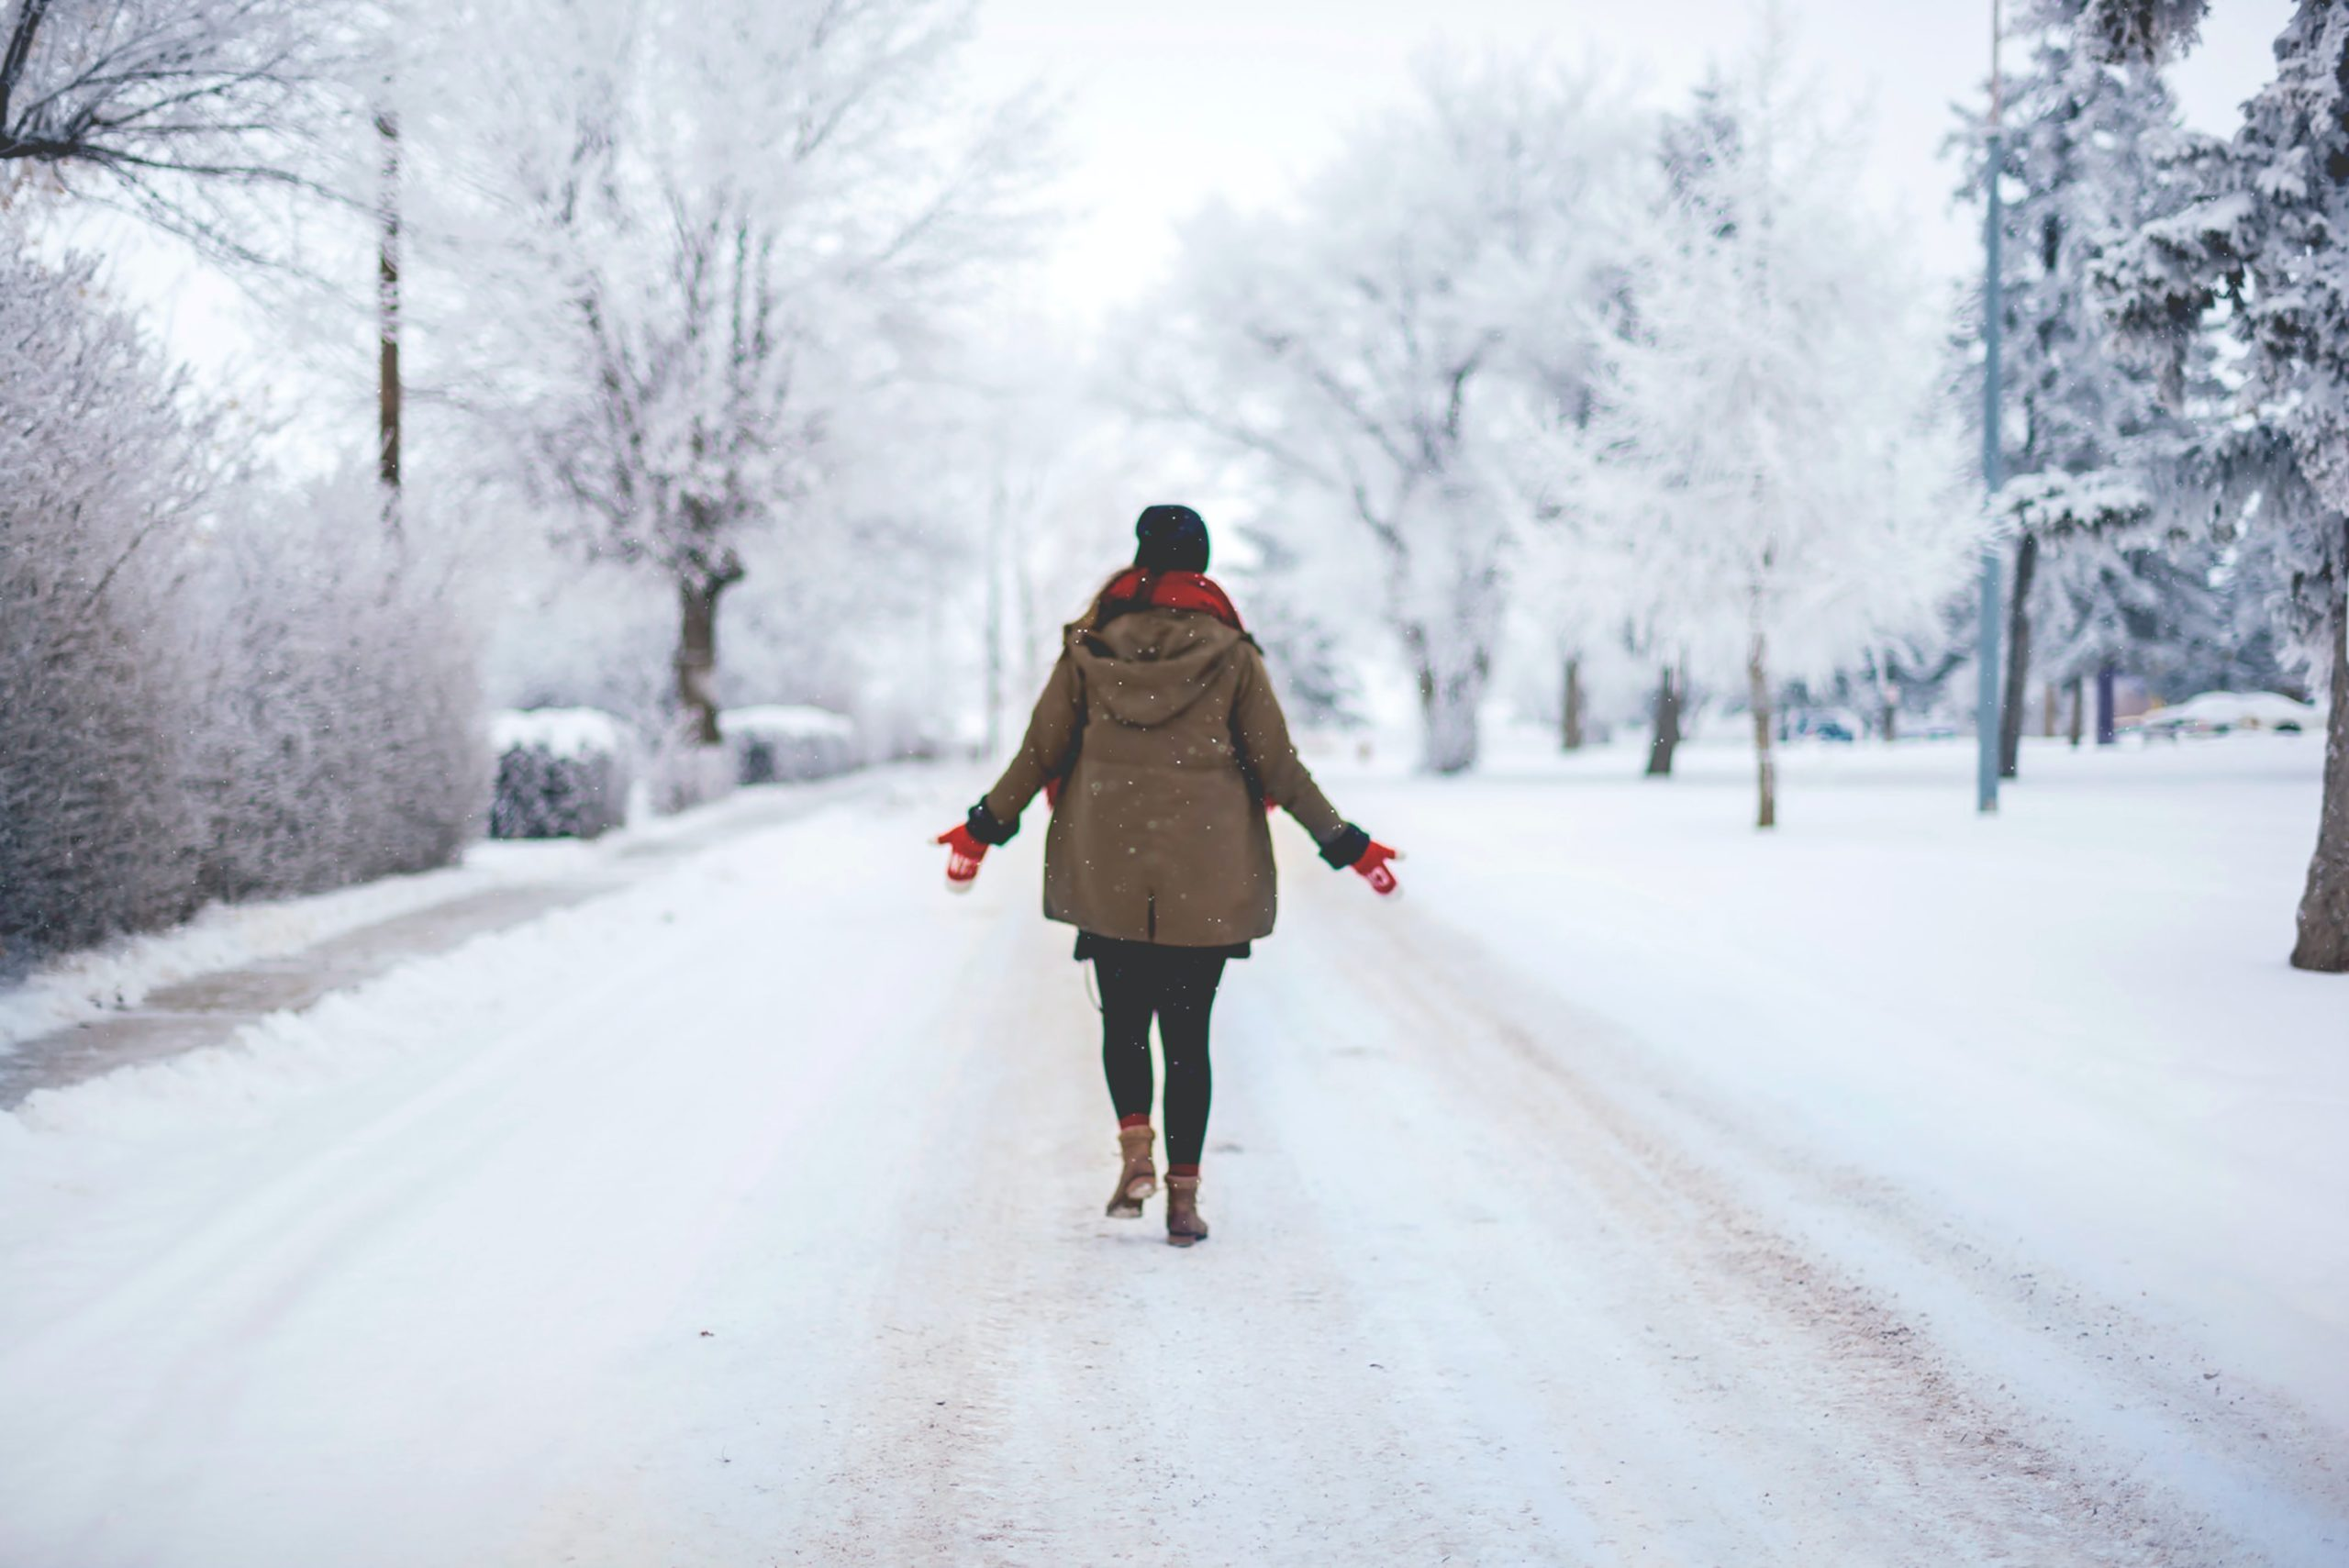 Winter Wellbeing Tips To Support Health & Wellness